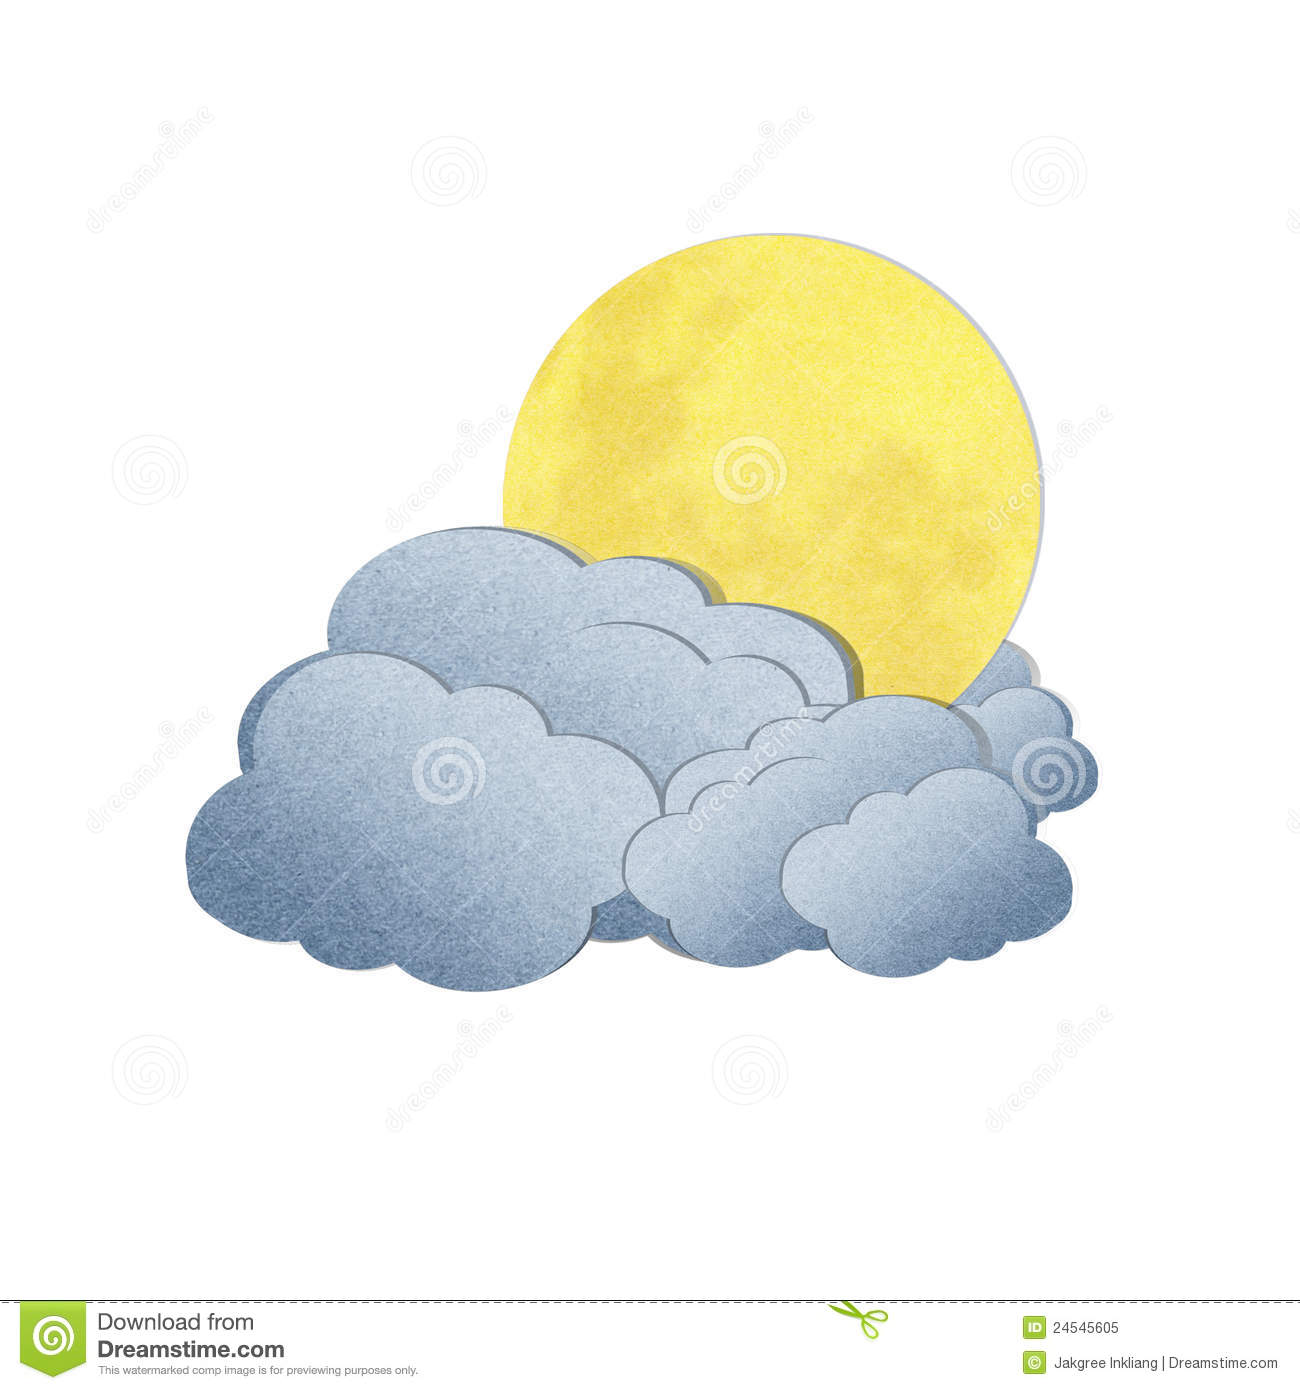 Moon and Clouds Clip Art.